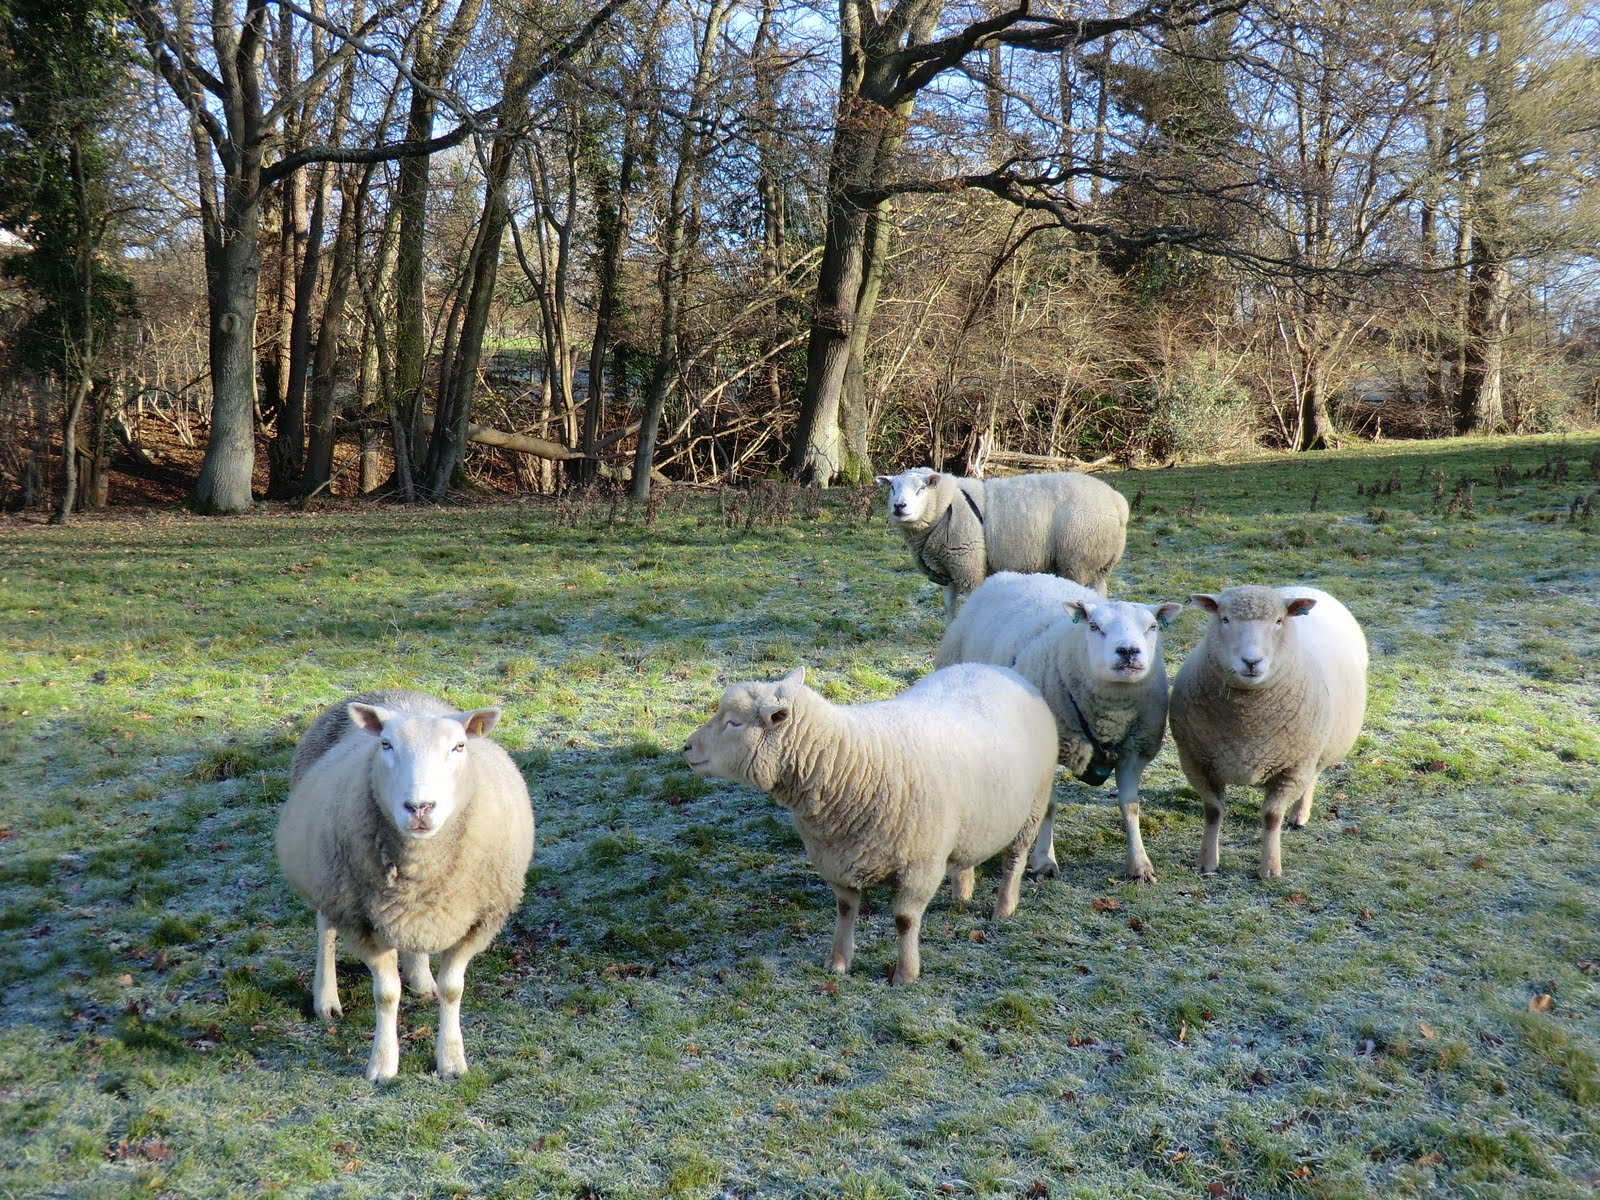 CIMG5020 Inquisitive sheep at Ockhams